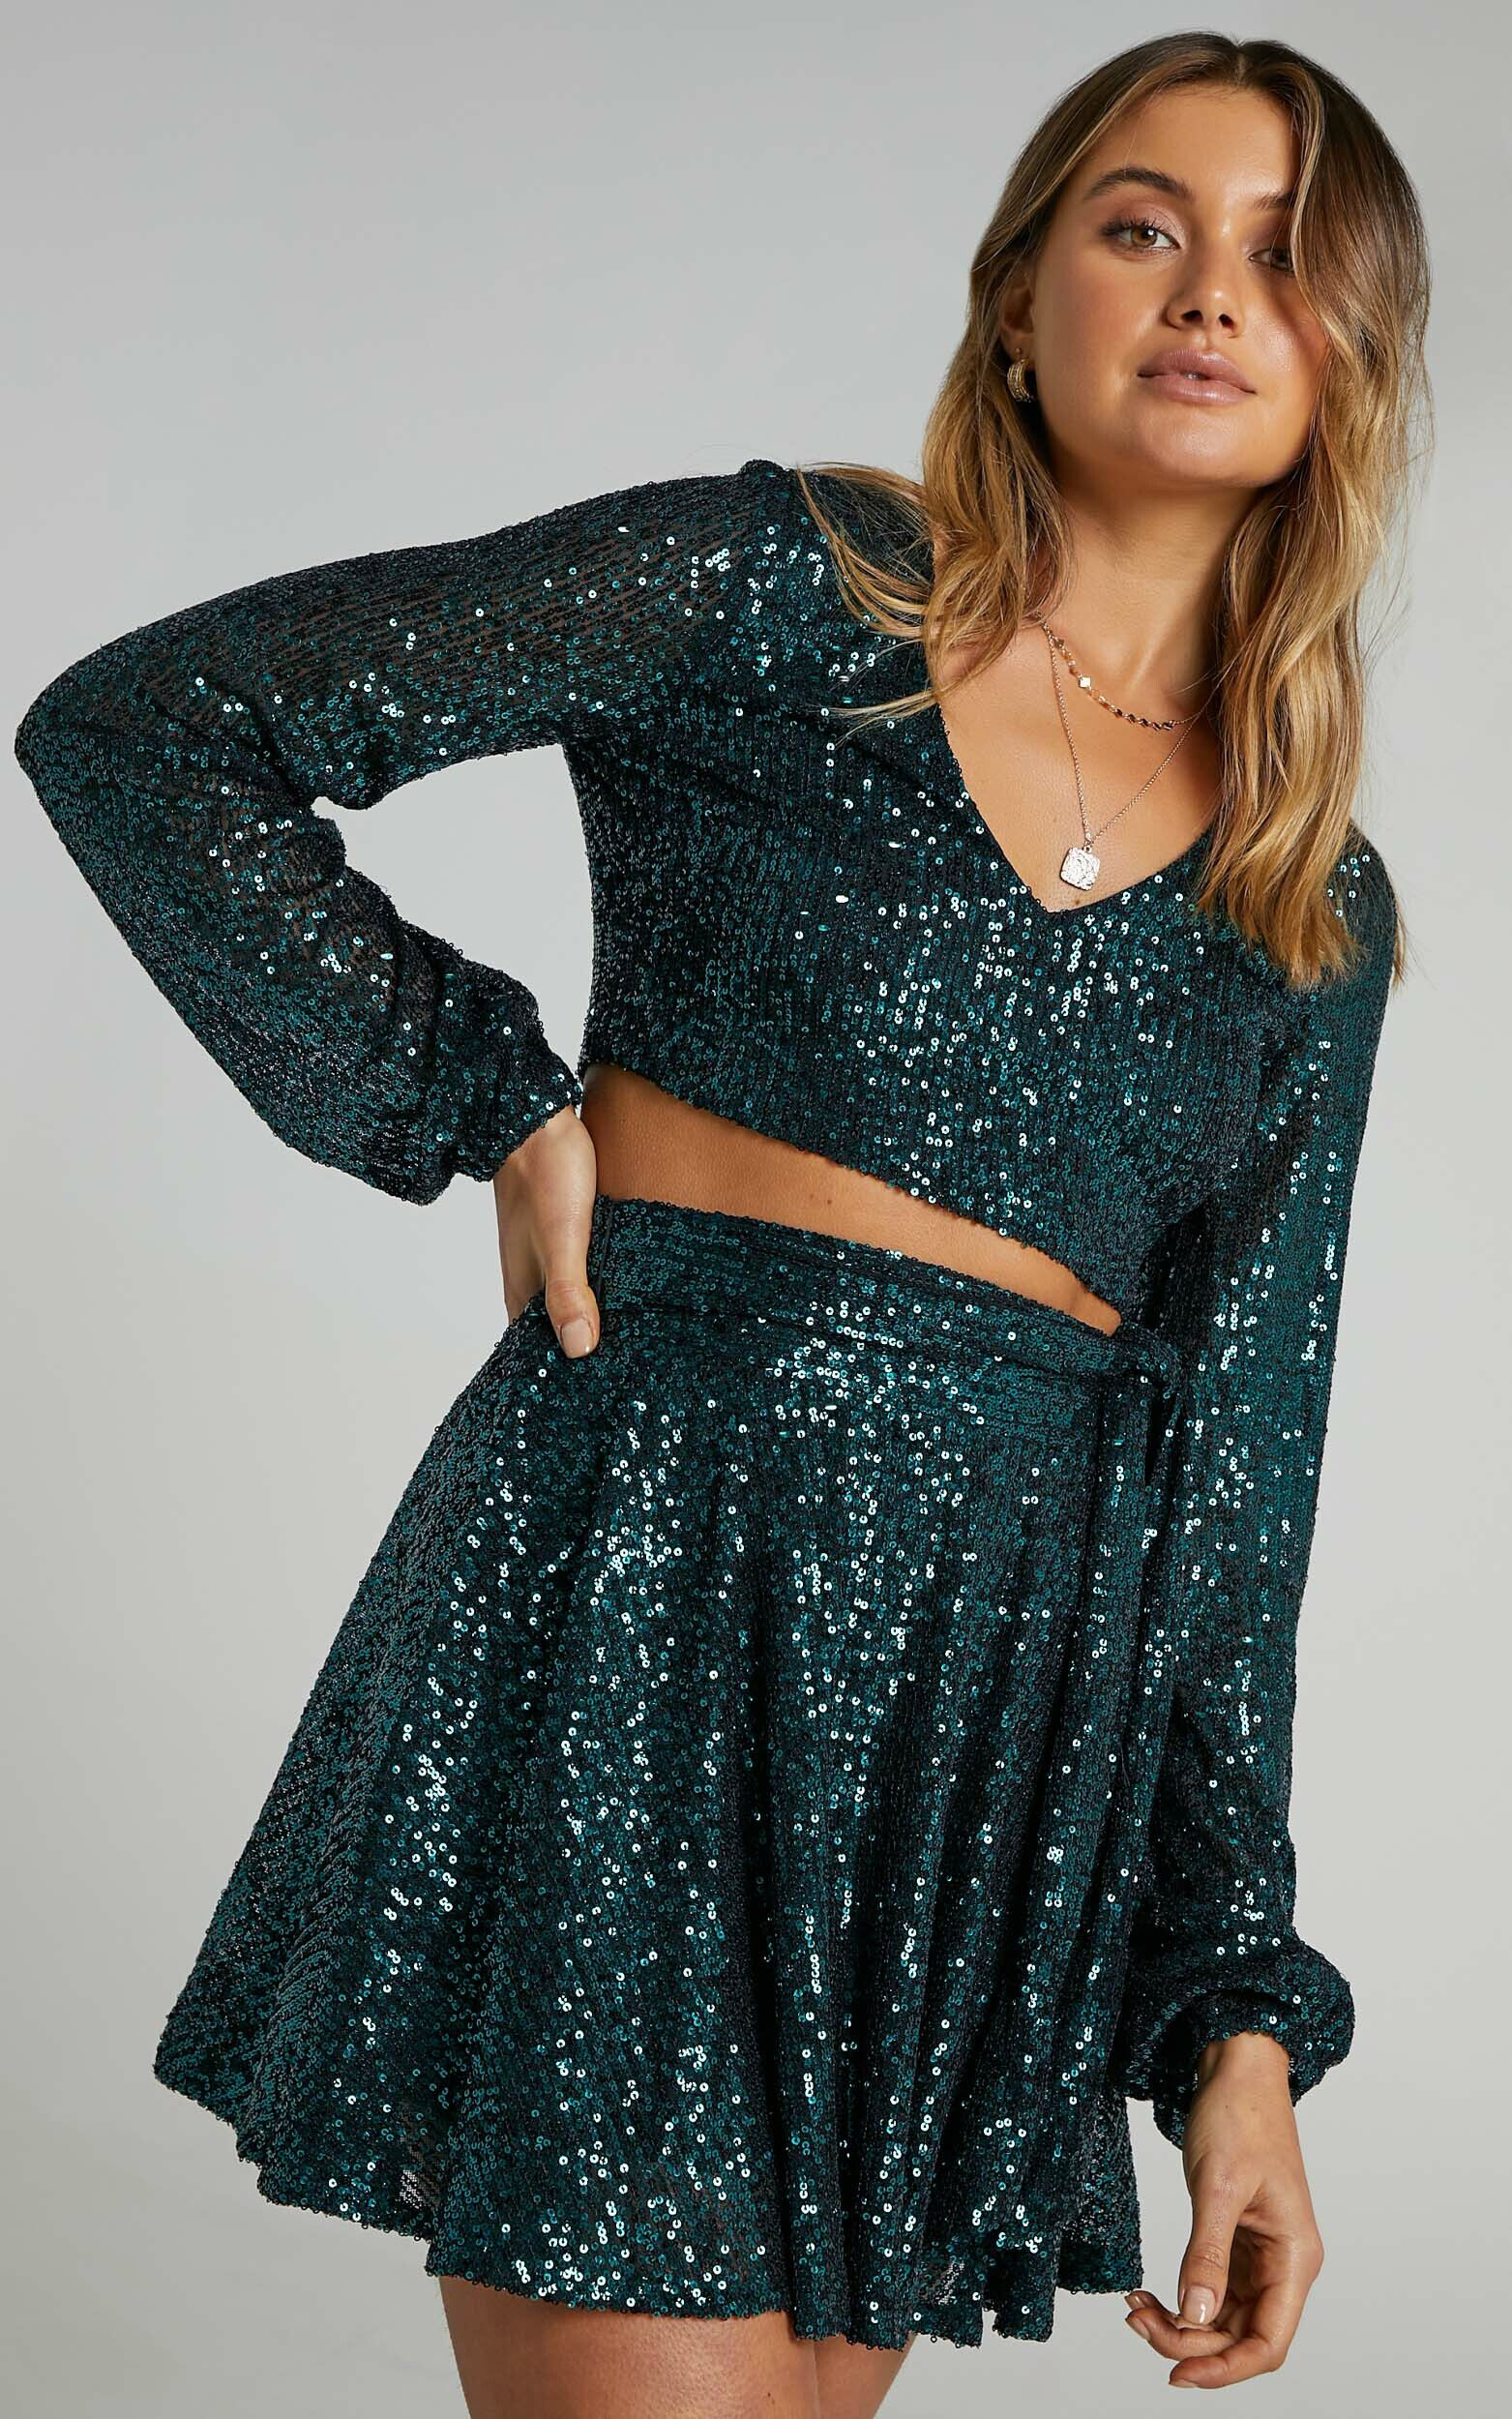 Cami Longsleeve Two Piece Set in Emerald Sequin - 06, GRN1, super-hi-res image number null